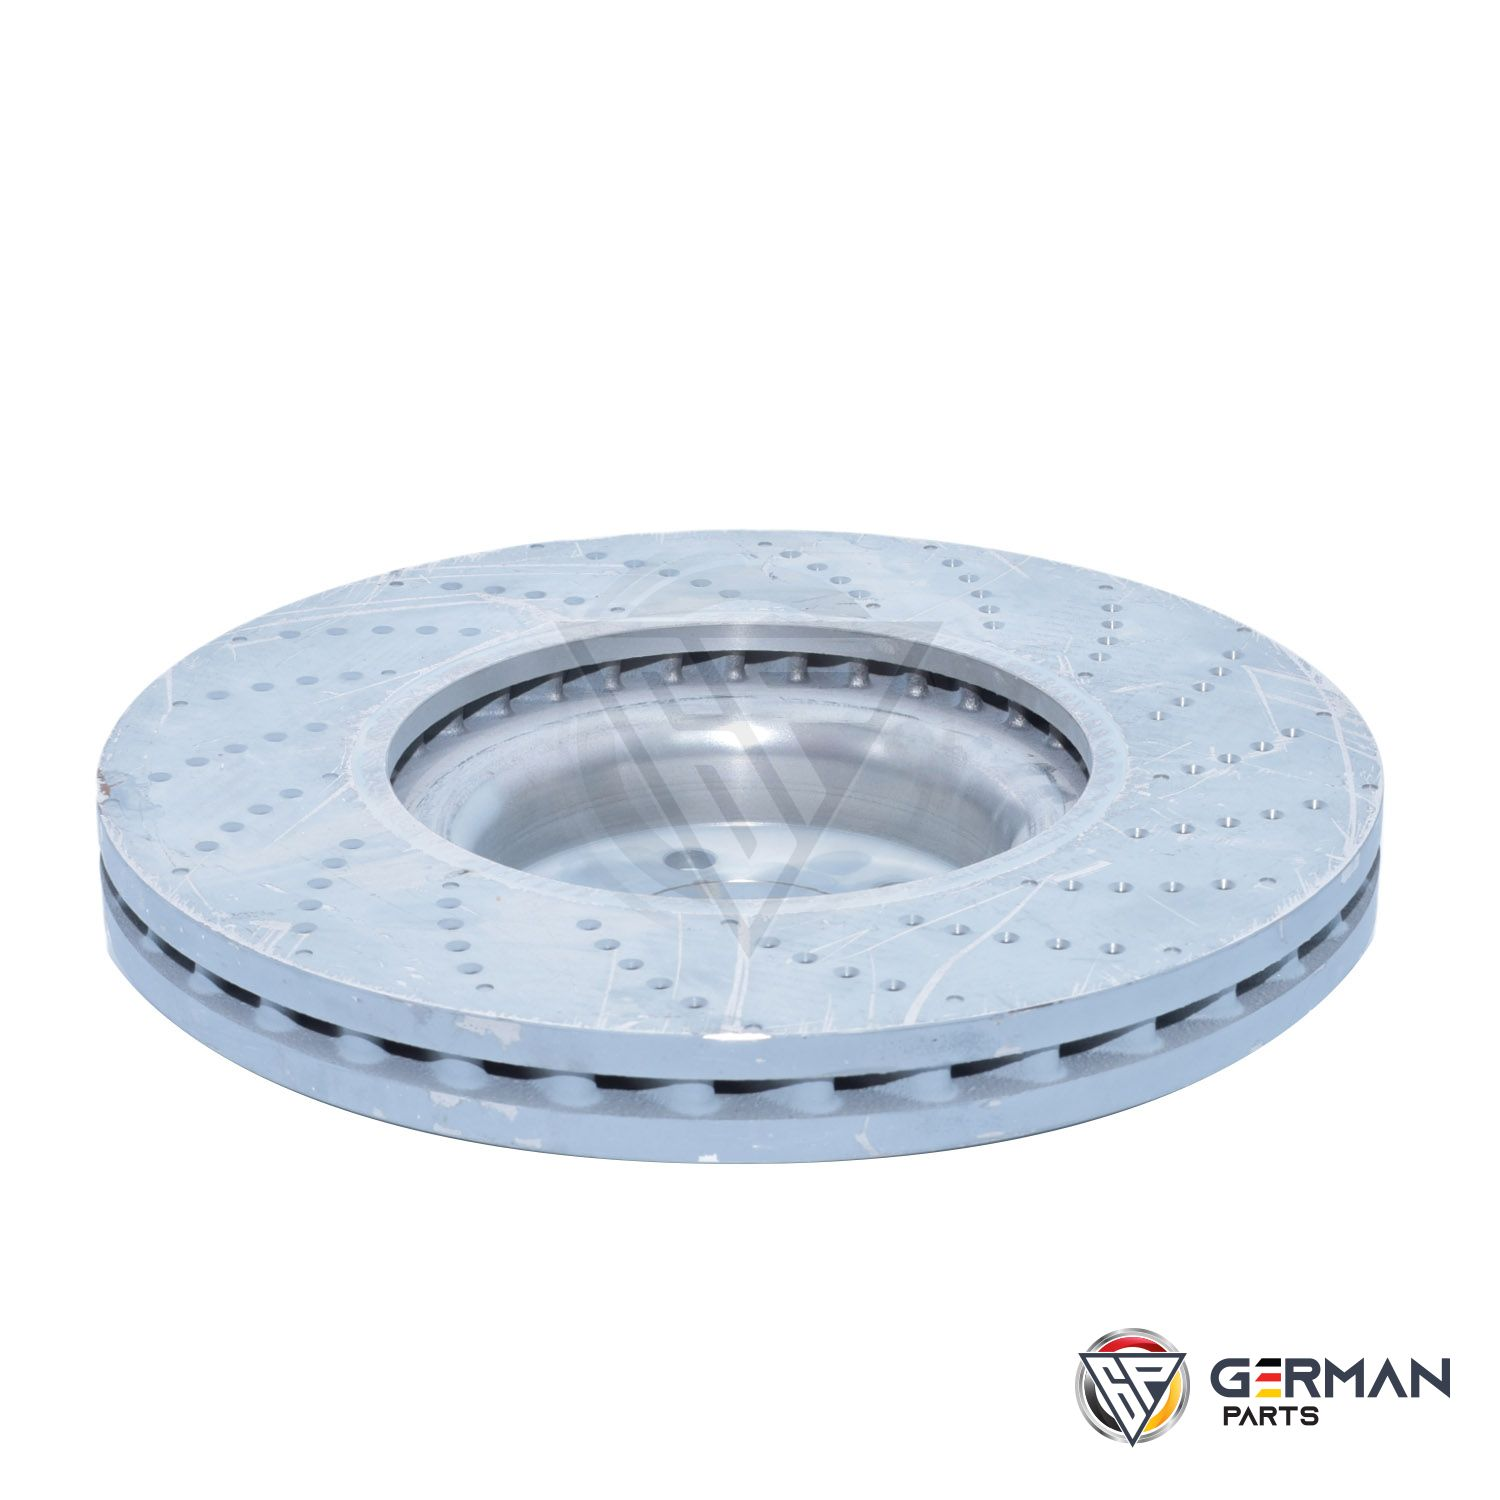 Buy Genuine Mercedes Benz Front Brake Disc 0004212012 - German Parts